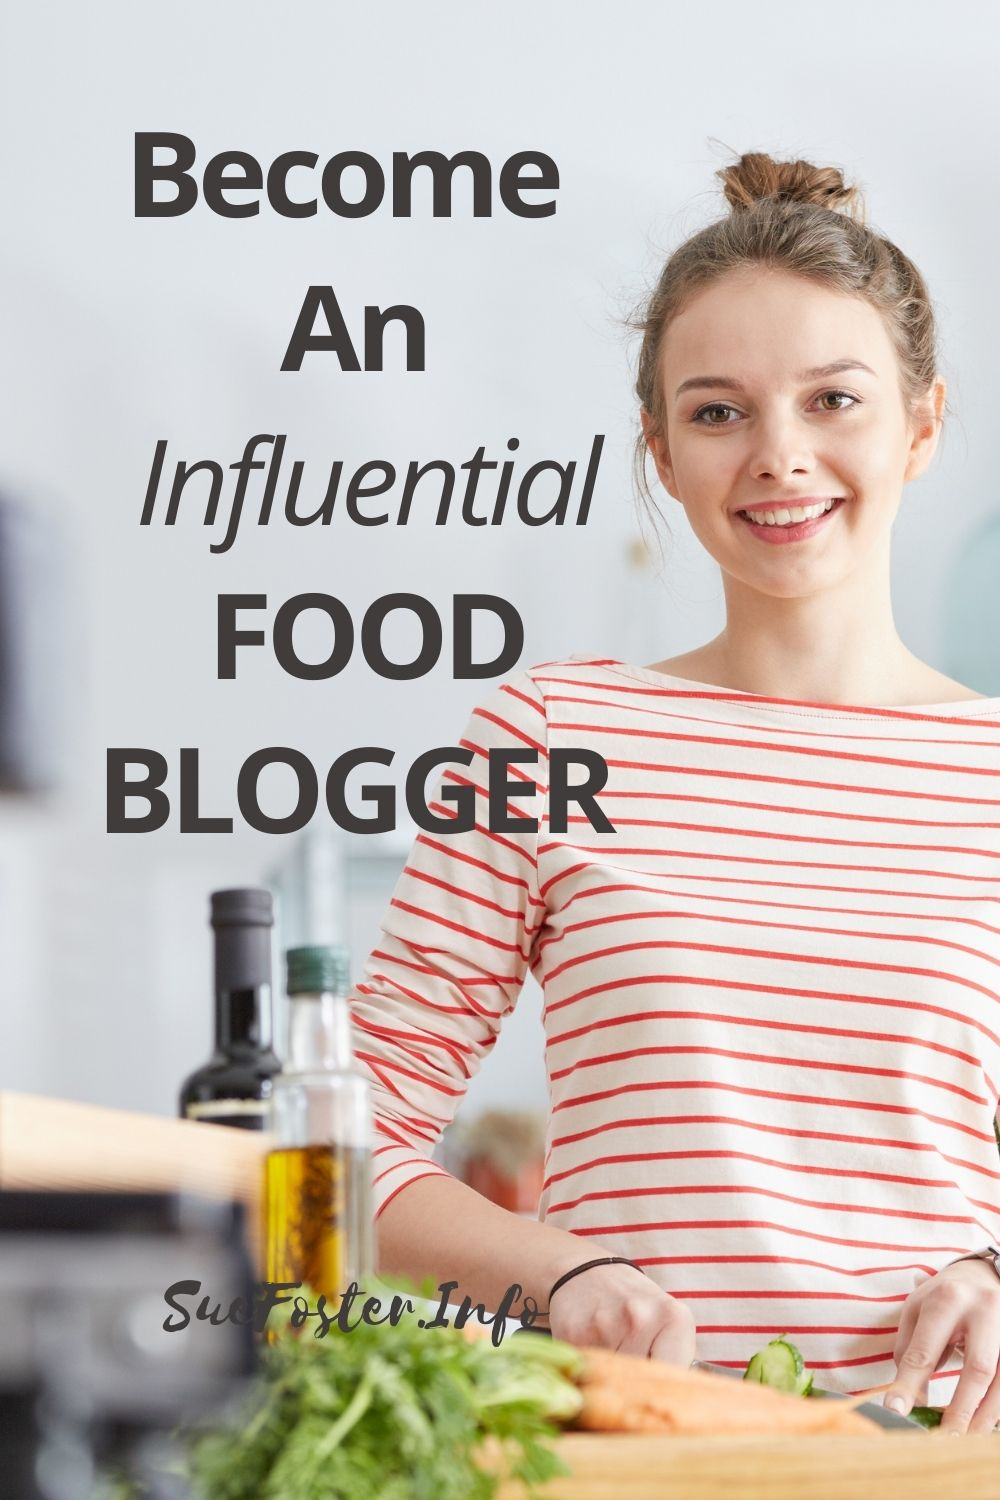 Start planning for a food blog project with these tips.